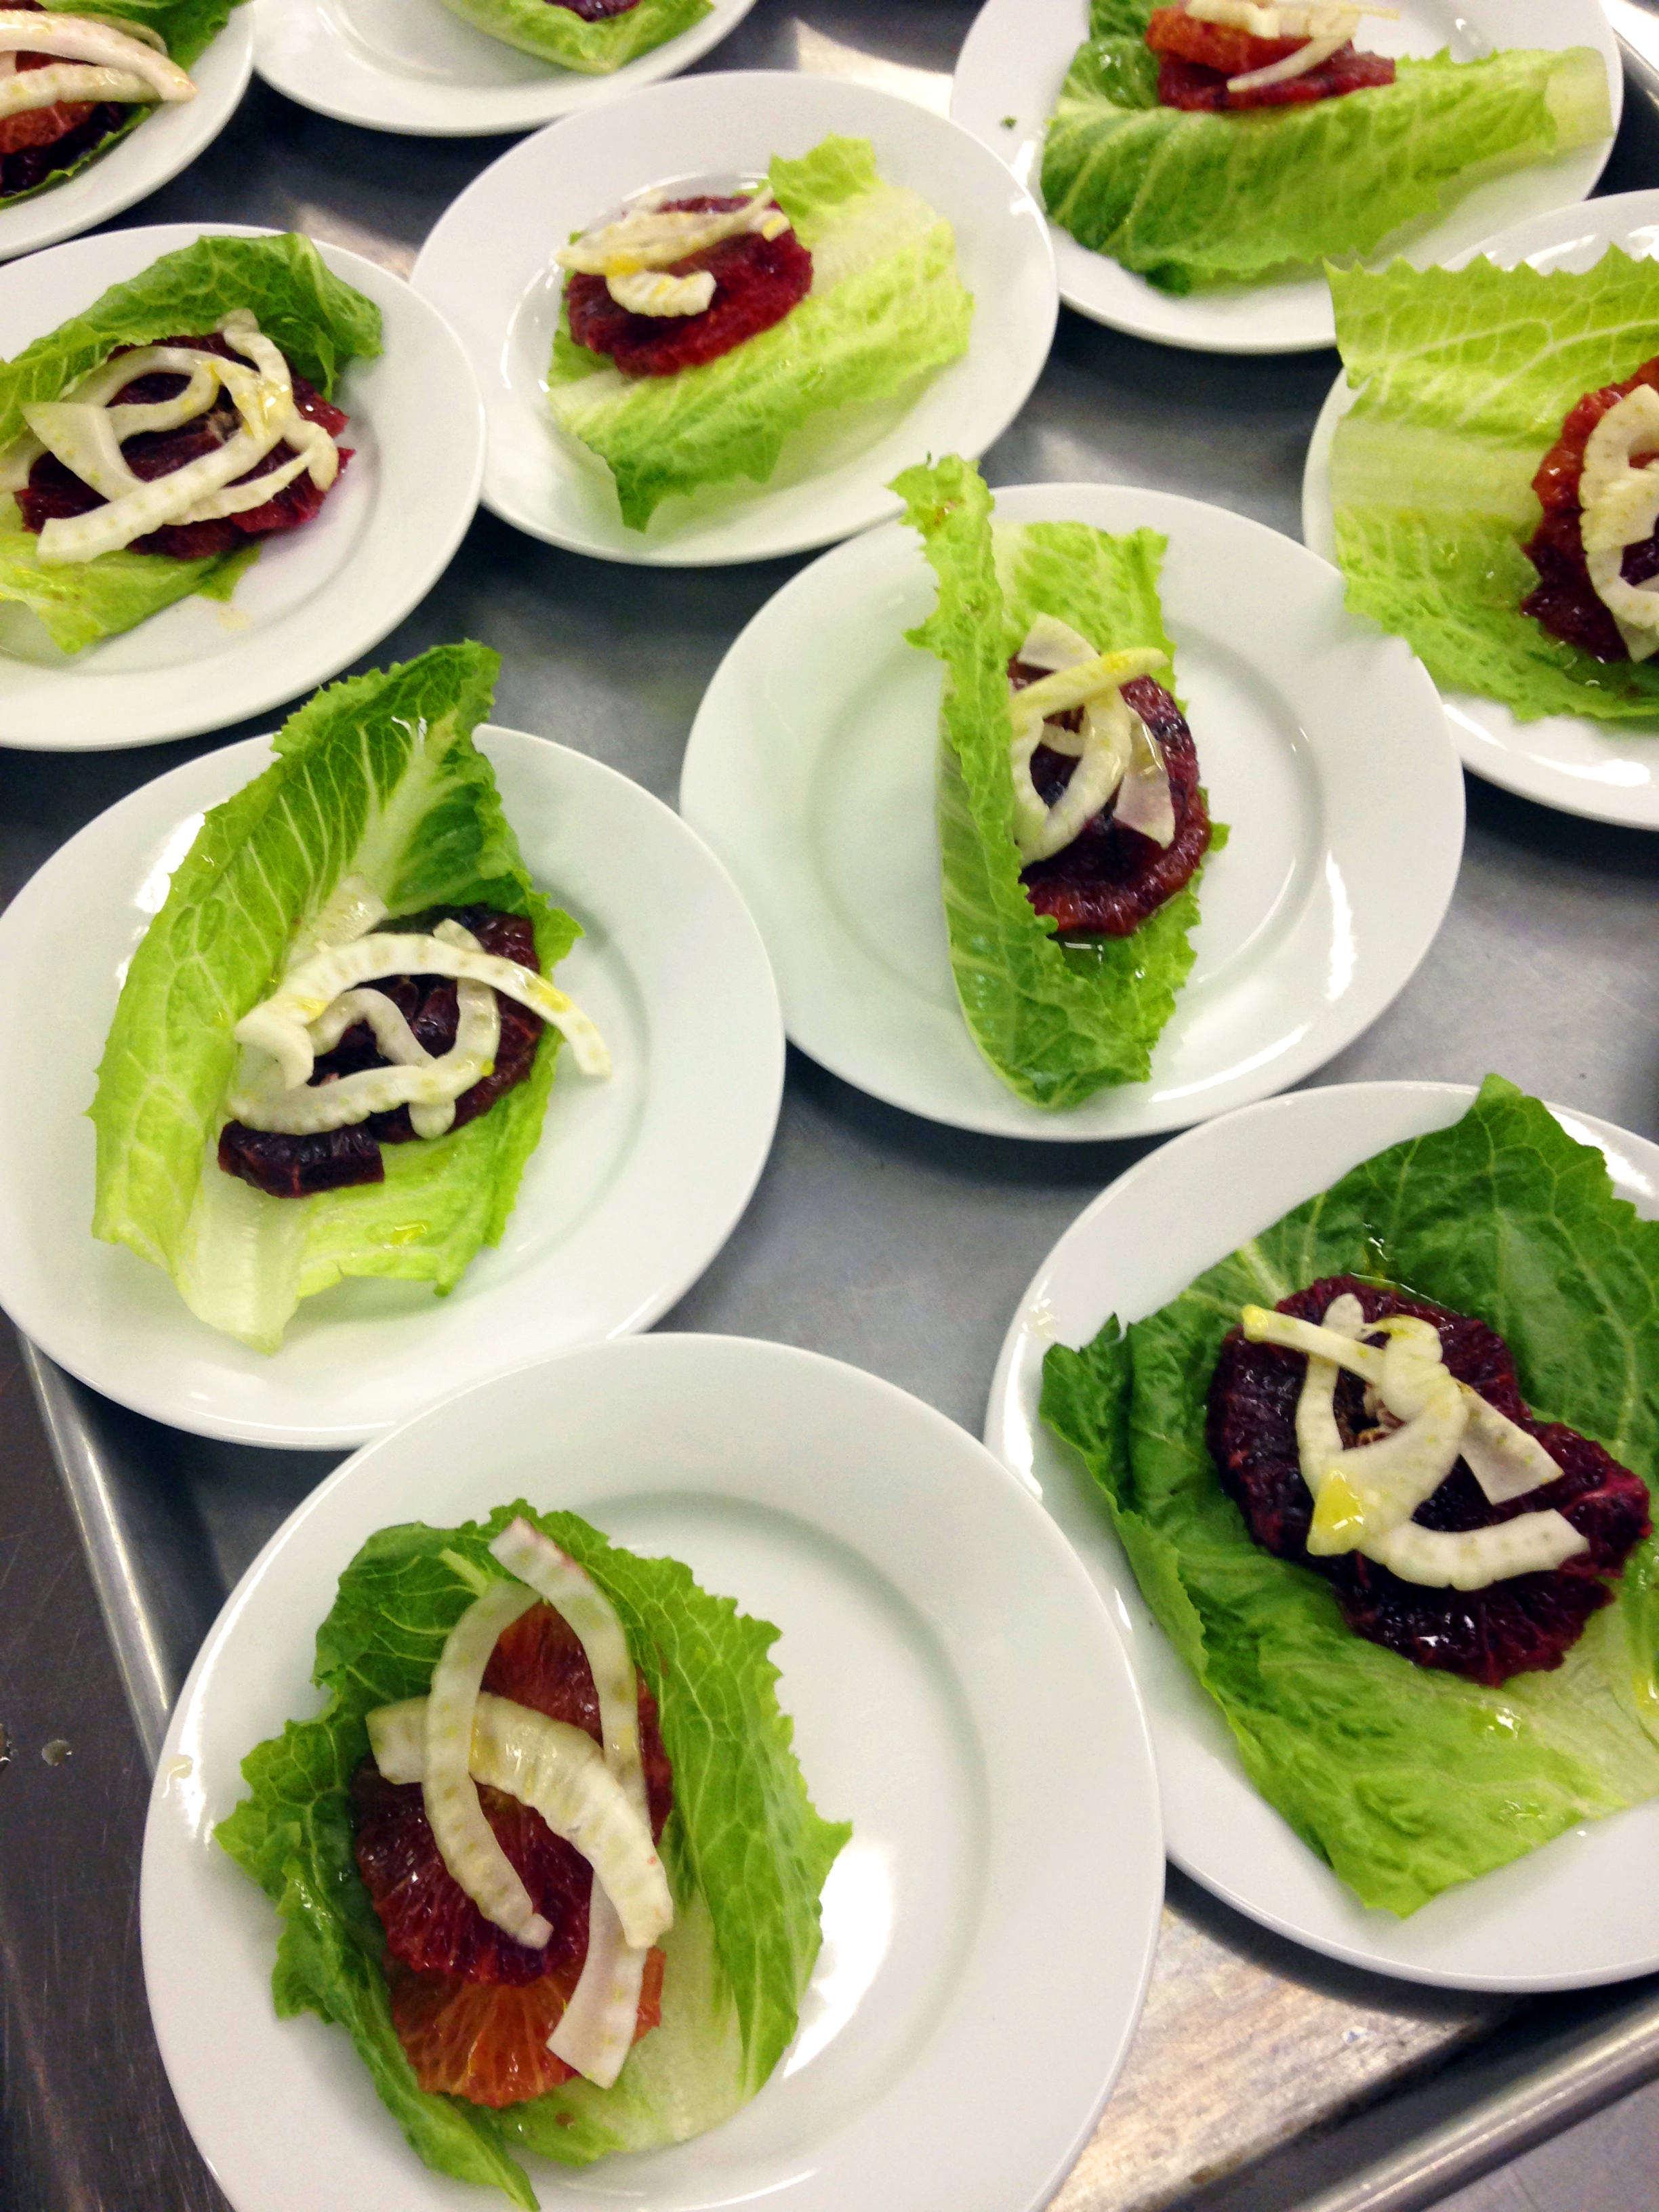 Plated salads before the addition of oil-cured black olives